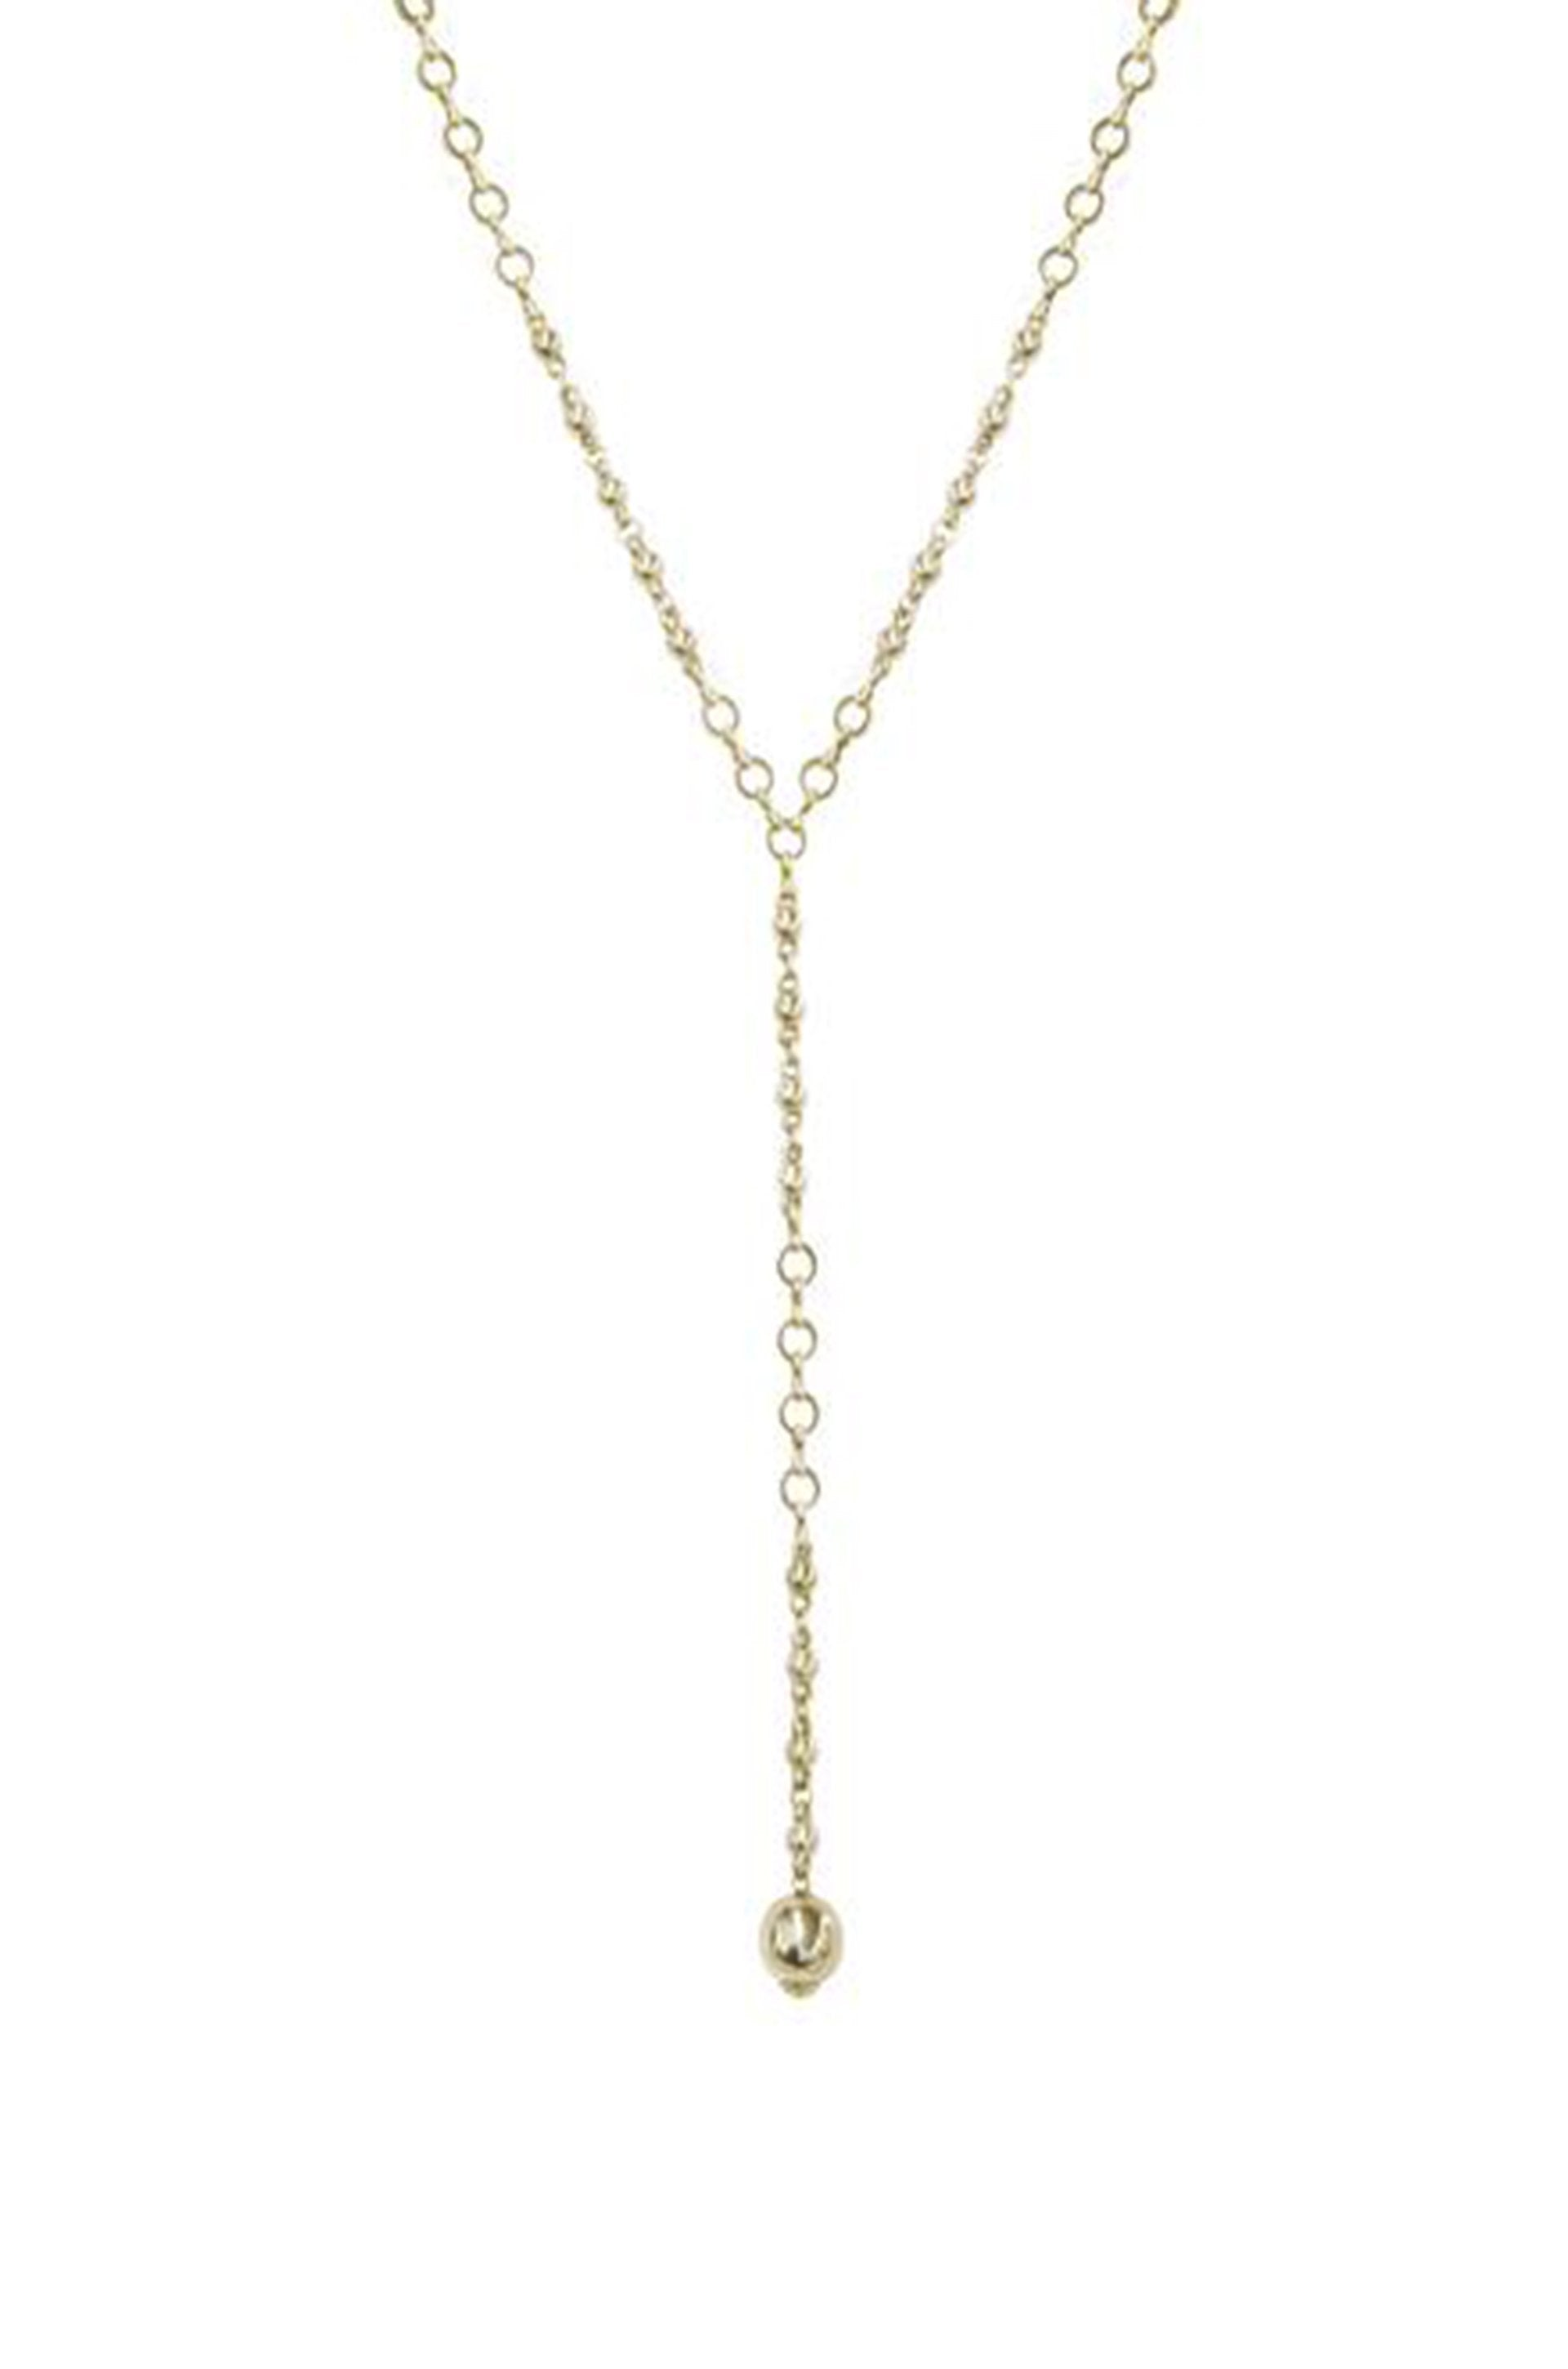 Always Guided 18k Gold Plated Chain Link Lariat Necklace - Monsoon Ridge